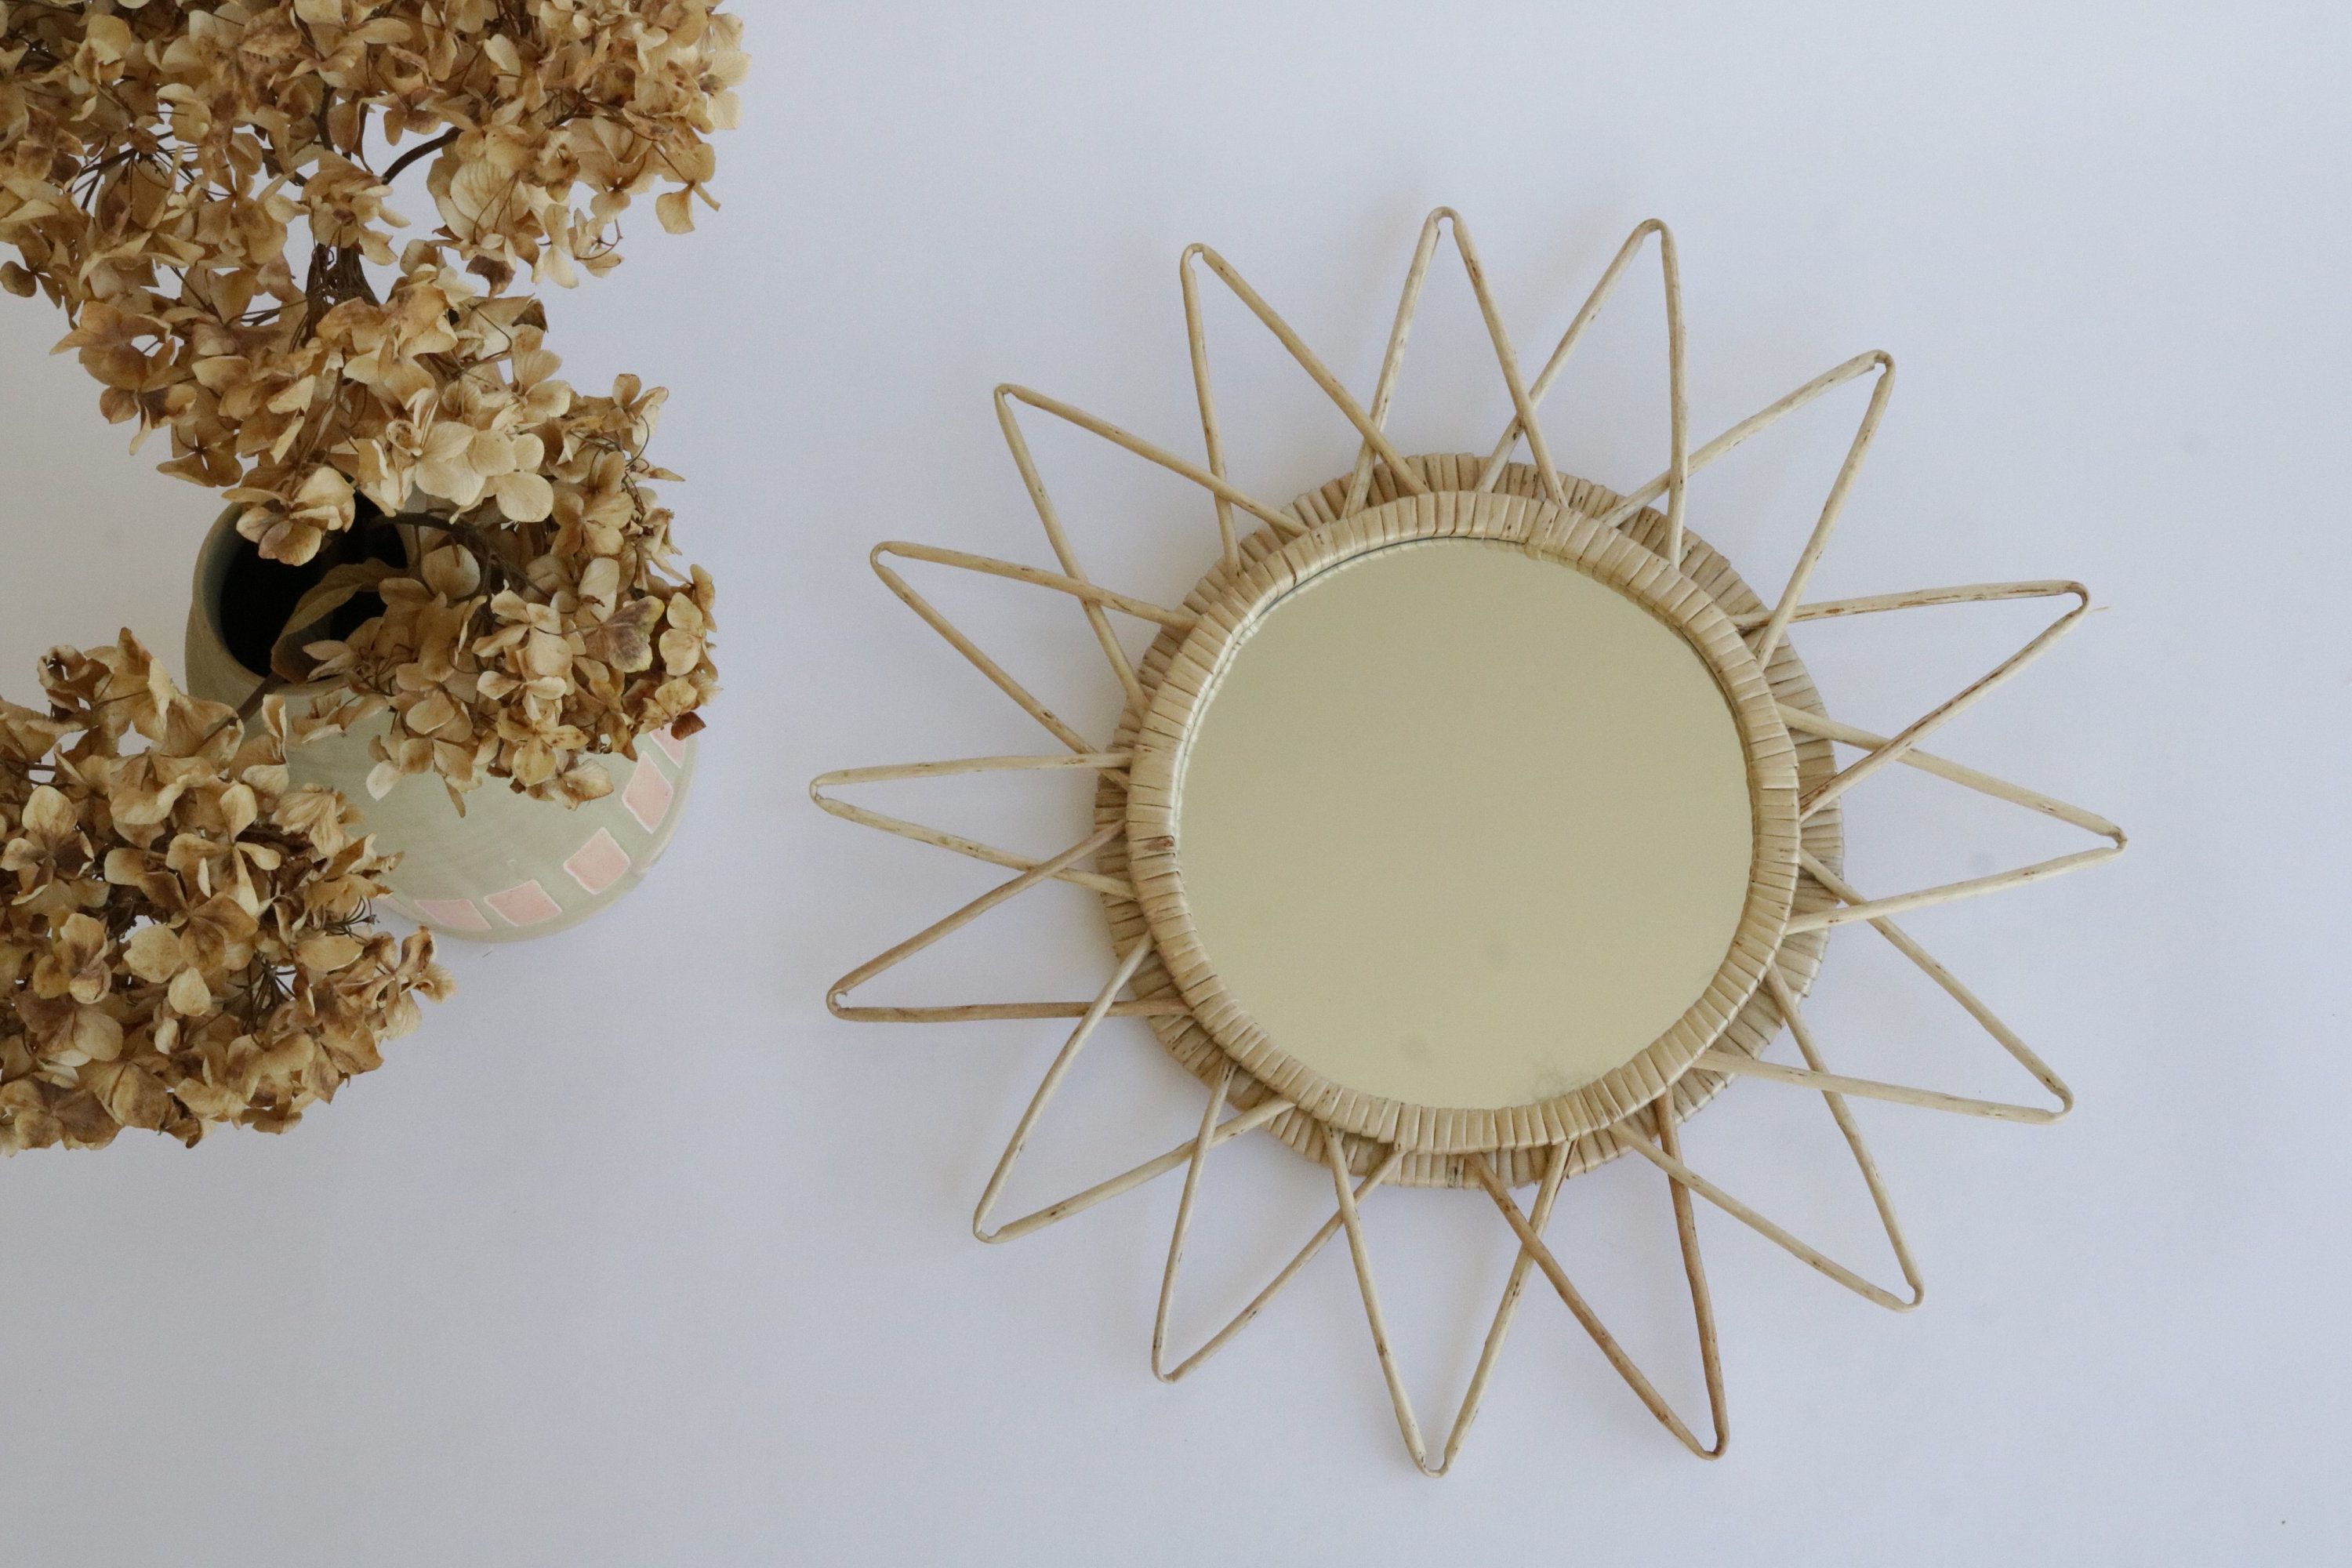 Most Up To Date Wicker Mirror, Sunburst Wall Mirror, Room Mirror, Miroir Soleil, Miroir En  Osier, Pajupeili, Rieten Spiegel, Rattan Mirror, Espejo De Mimbre With Regard To Soleil Wall Mirrors (View 12 of 20)